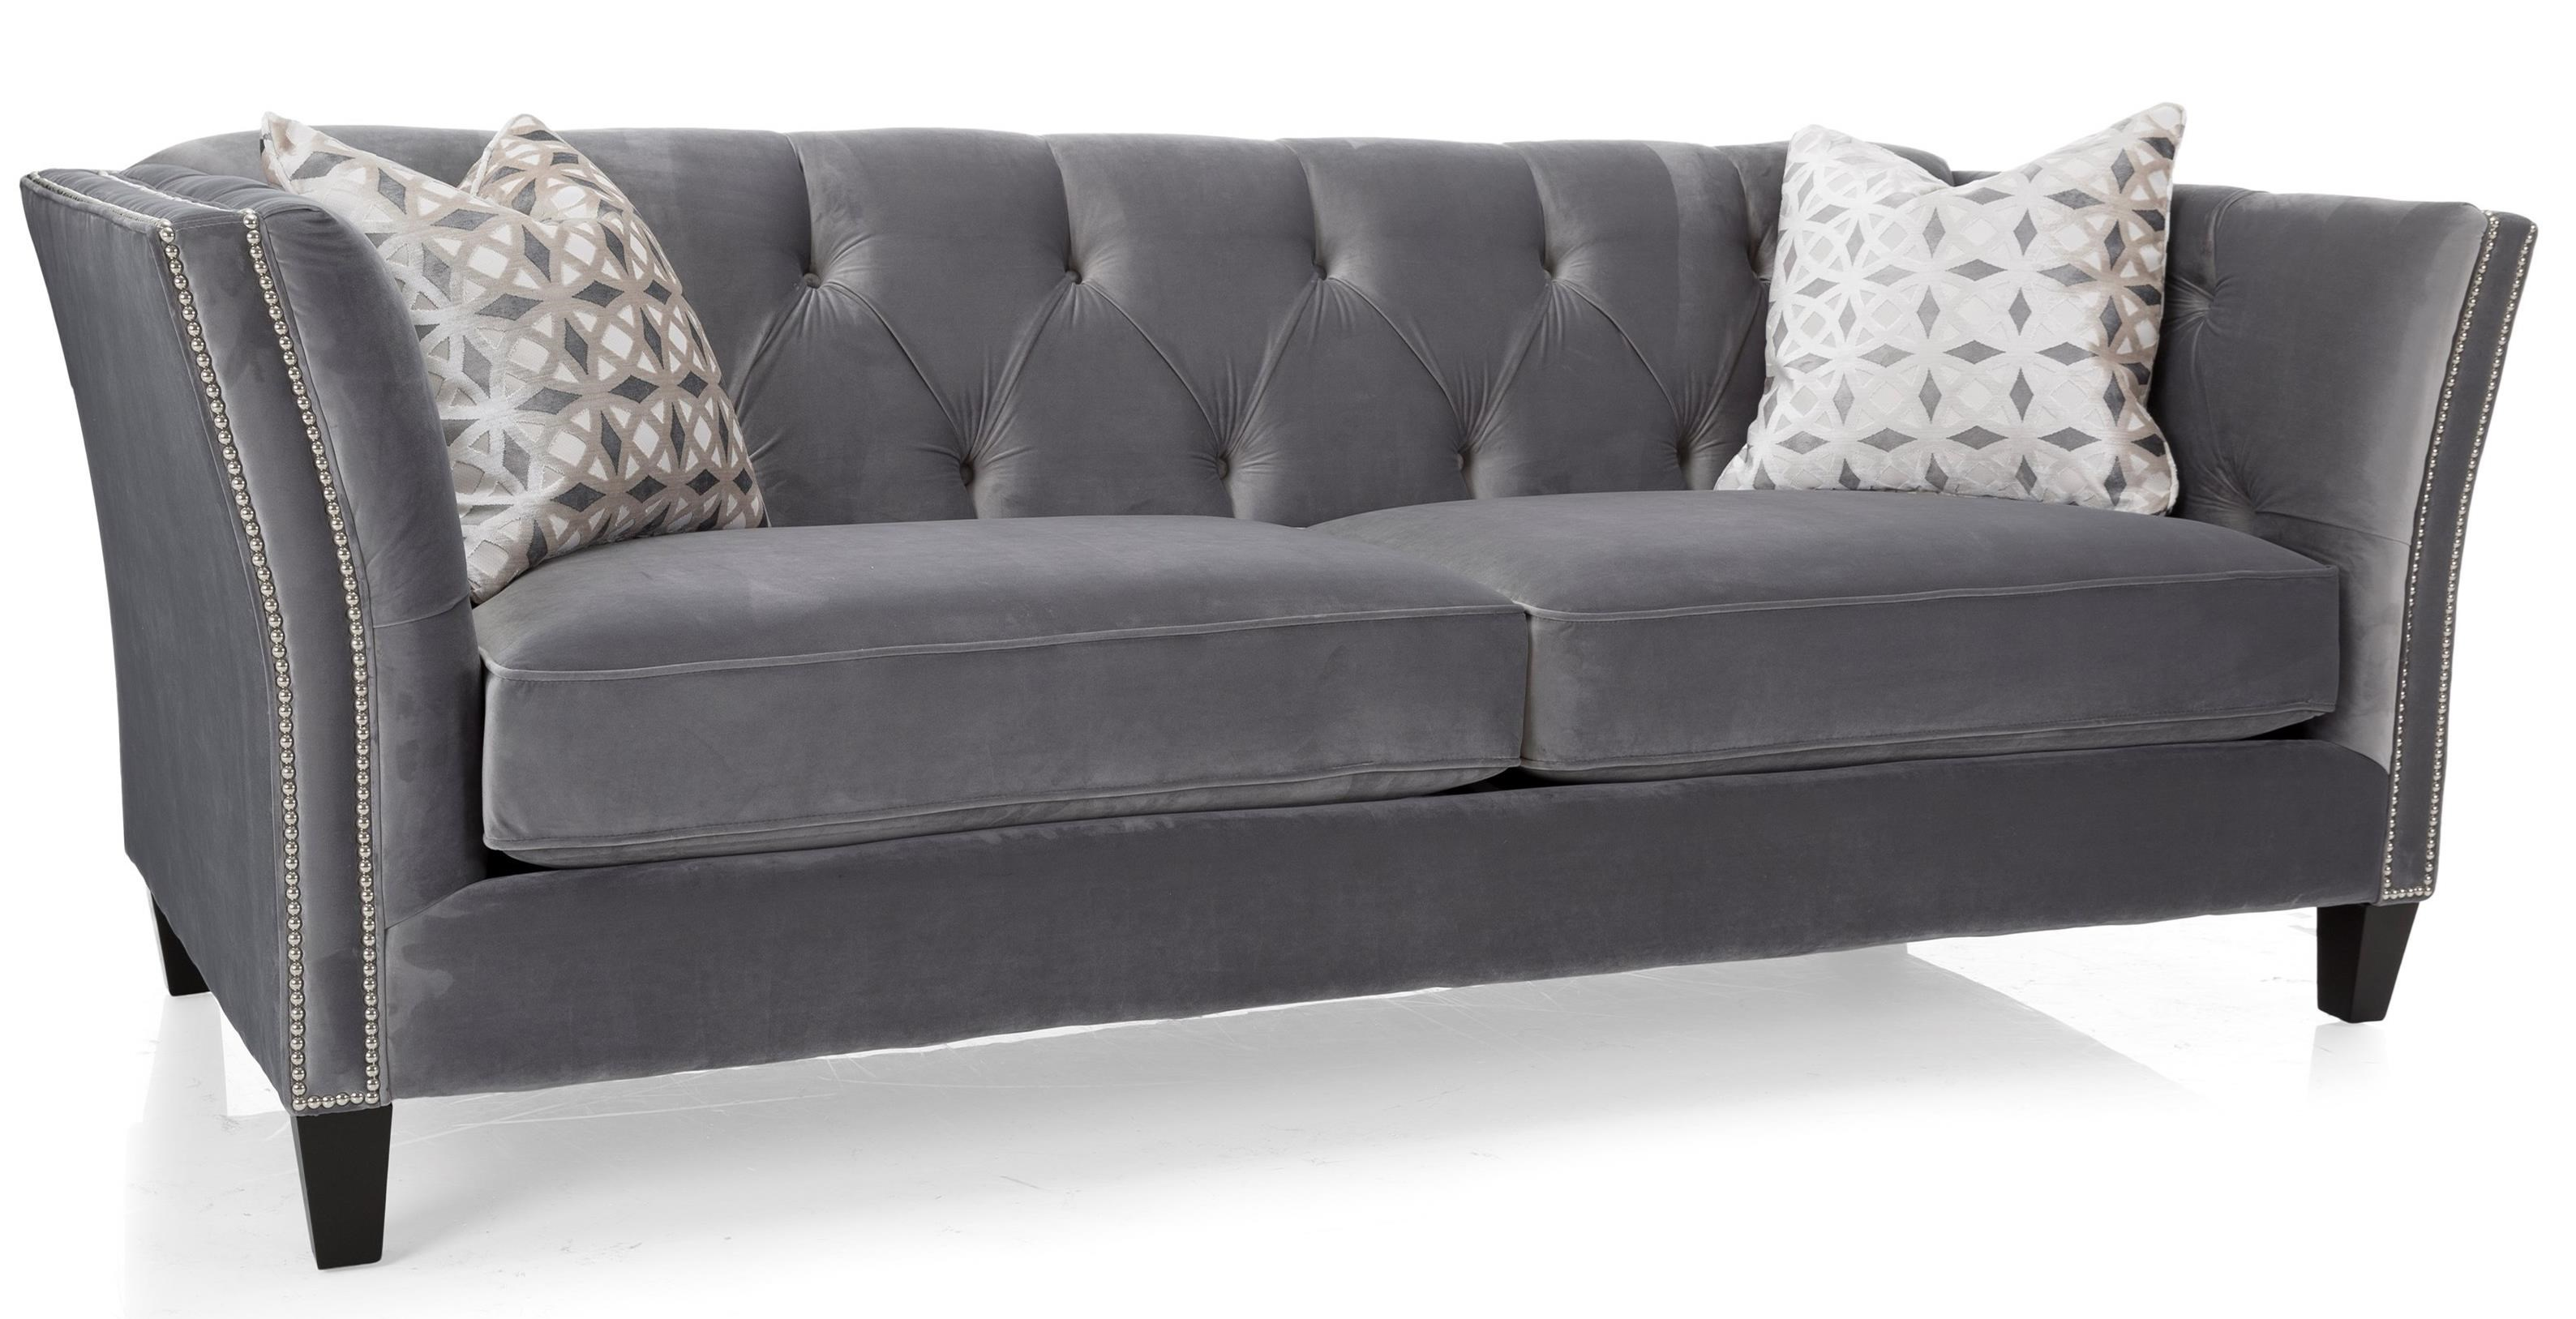 2555 Sofa by Decor-Rest at Upper Room Home Furnishings